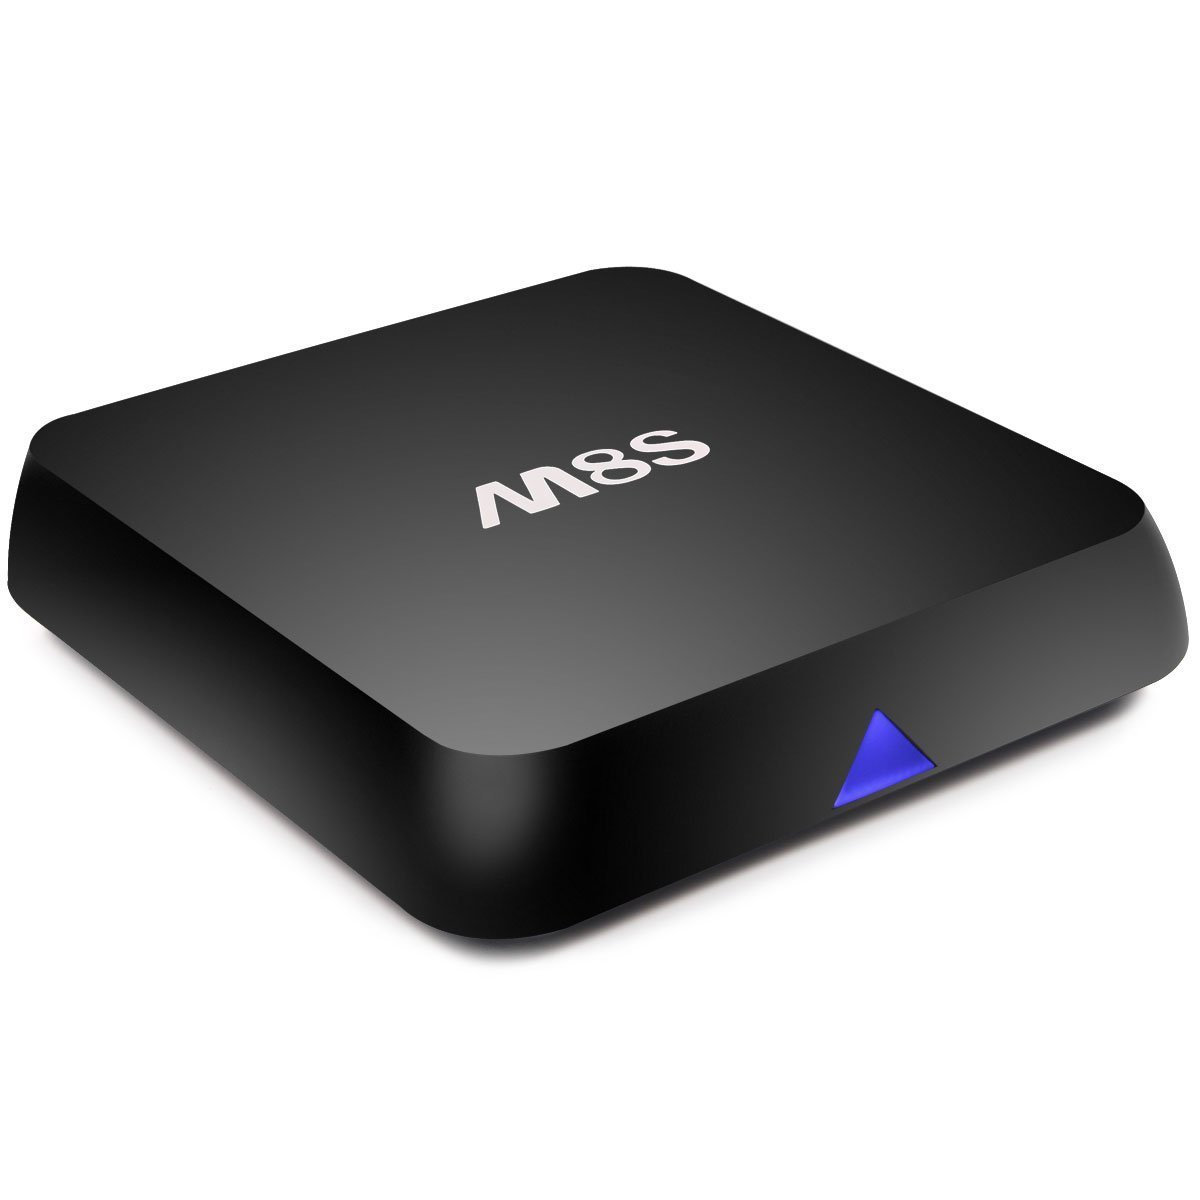 China OEM Logo on Android 5.1 Smart TV Box M8s Set Top Box